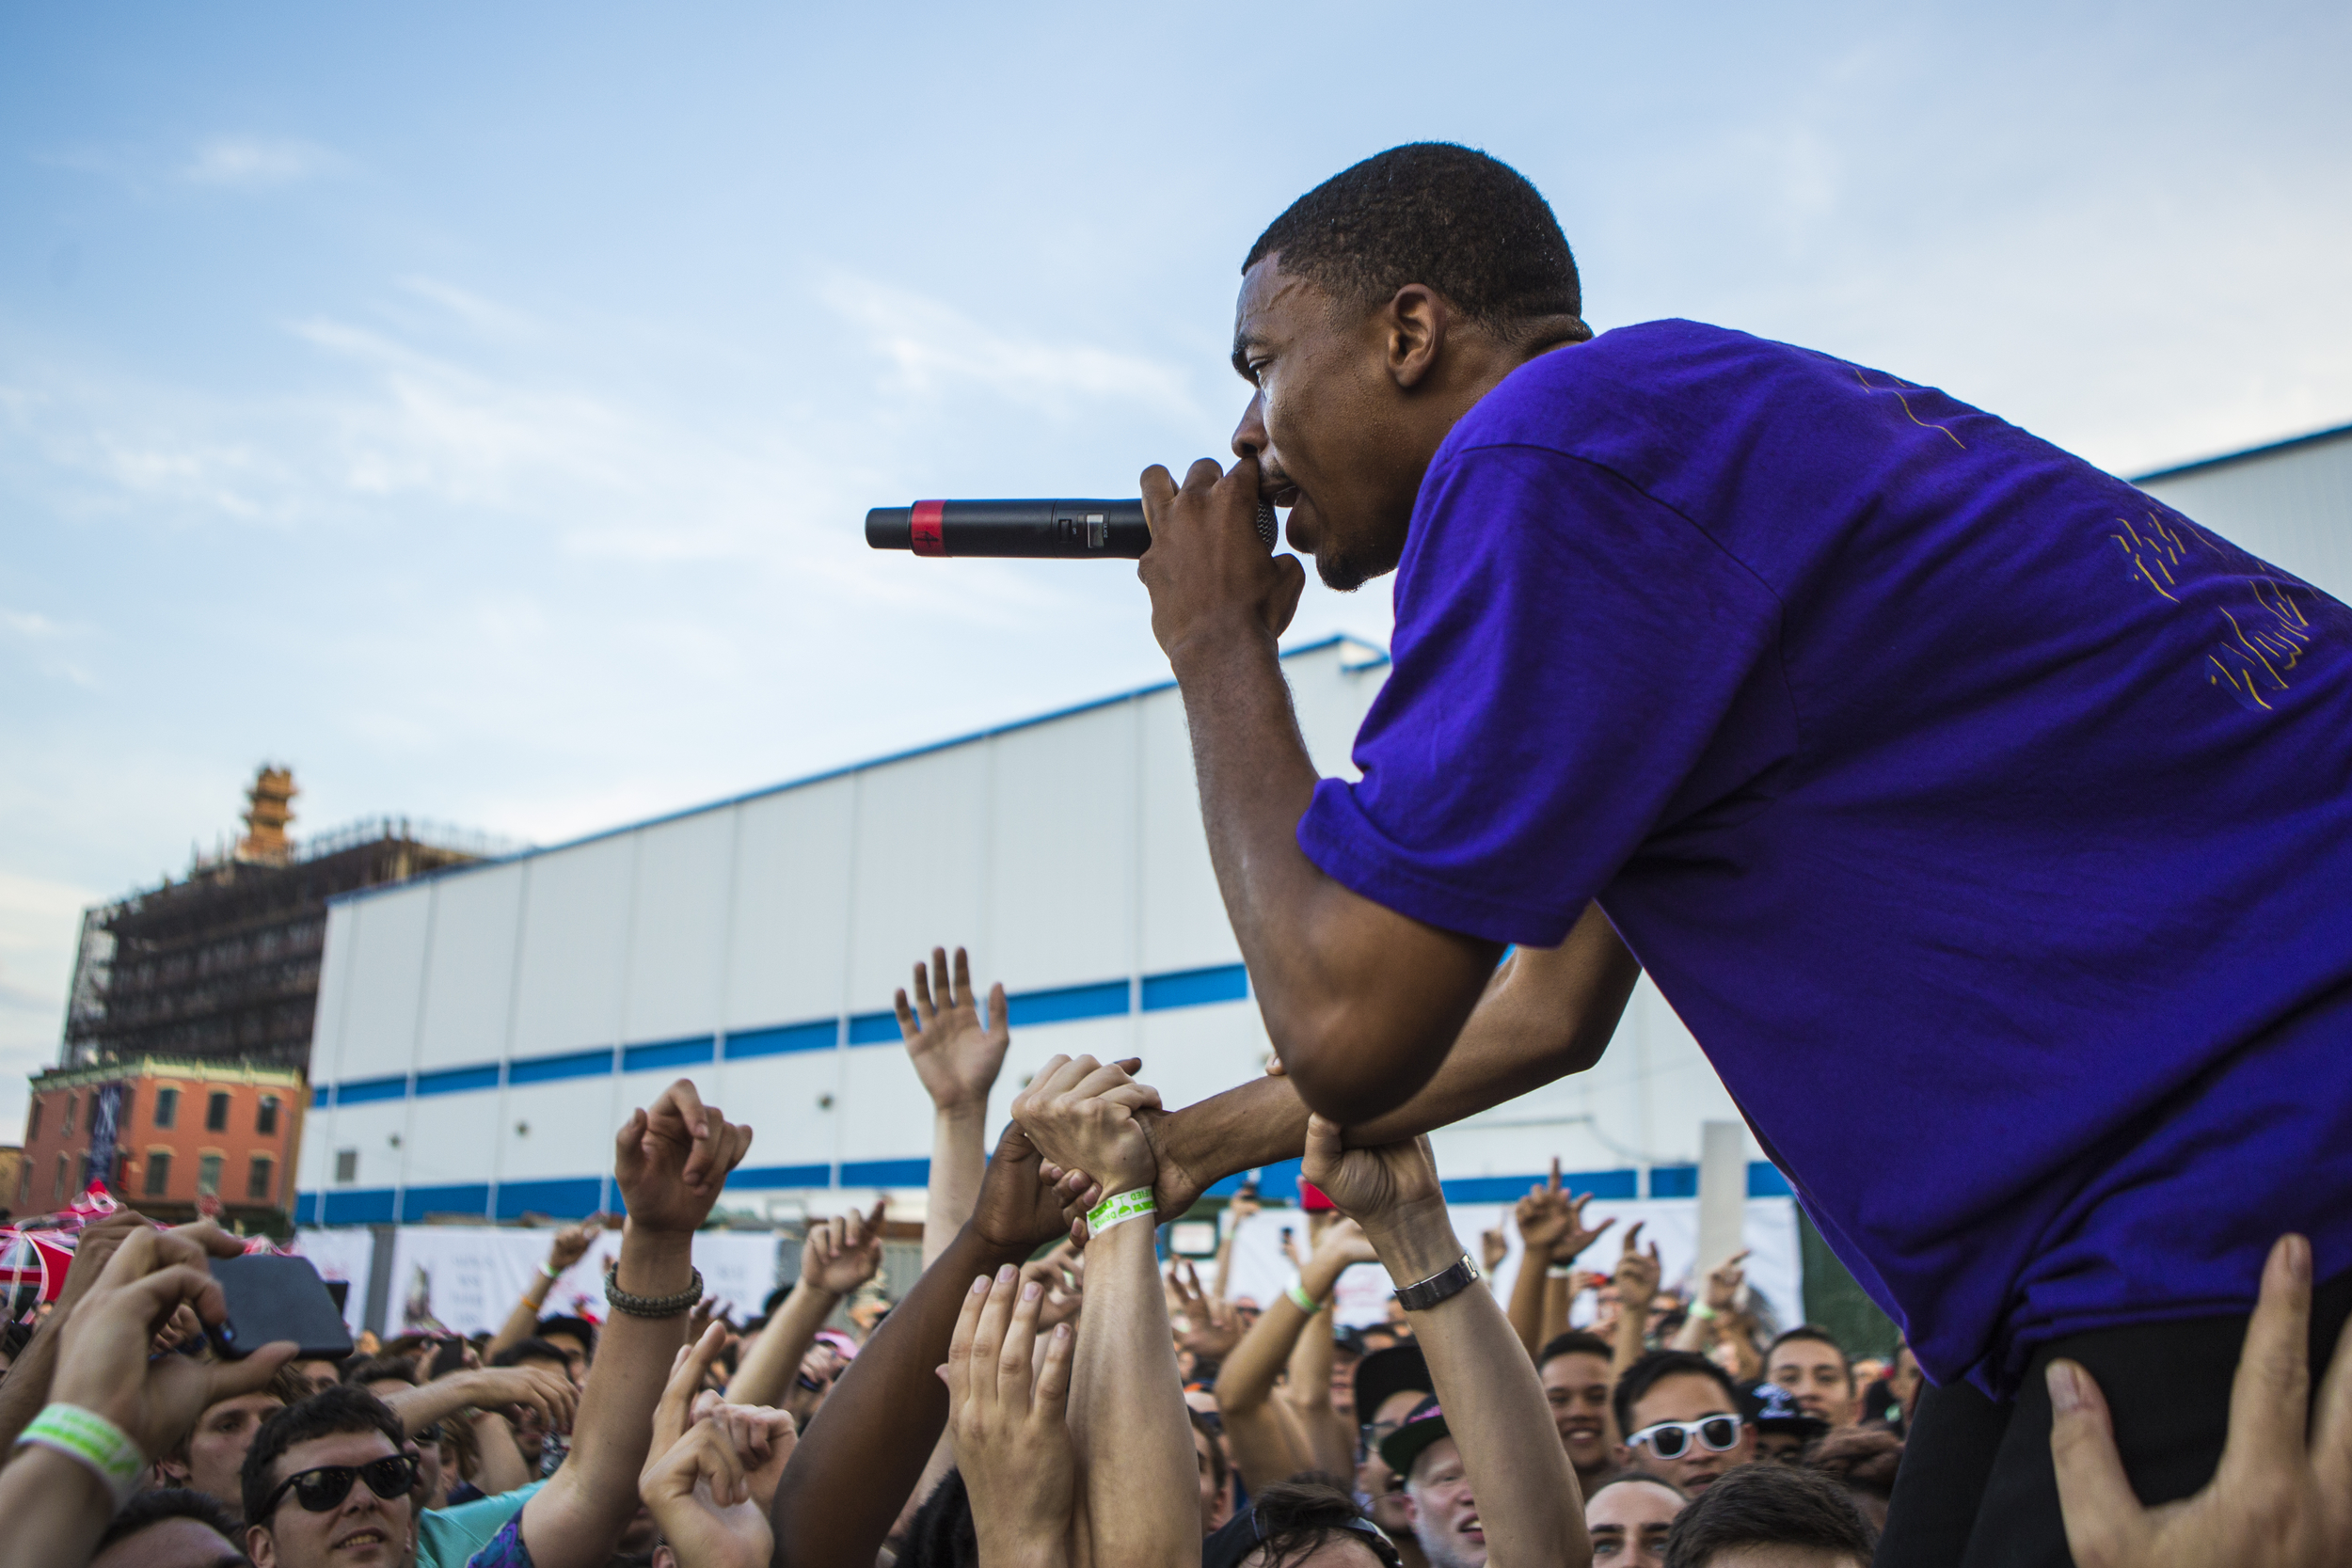 Vince Staples performs during Brooklyn's Northside Festival at 50 Kent Avenue on June 14, 2015 in Brooklyn, New York. Shot for the  Village Voice / Getty Images .